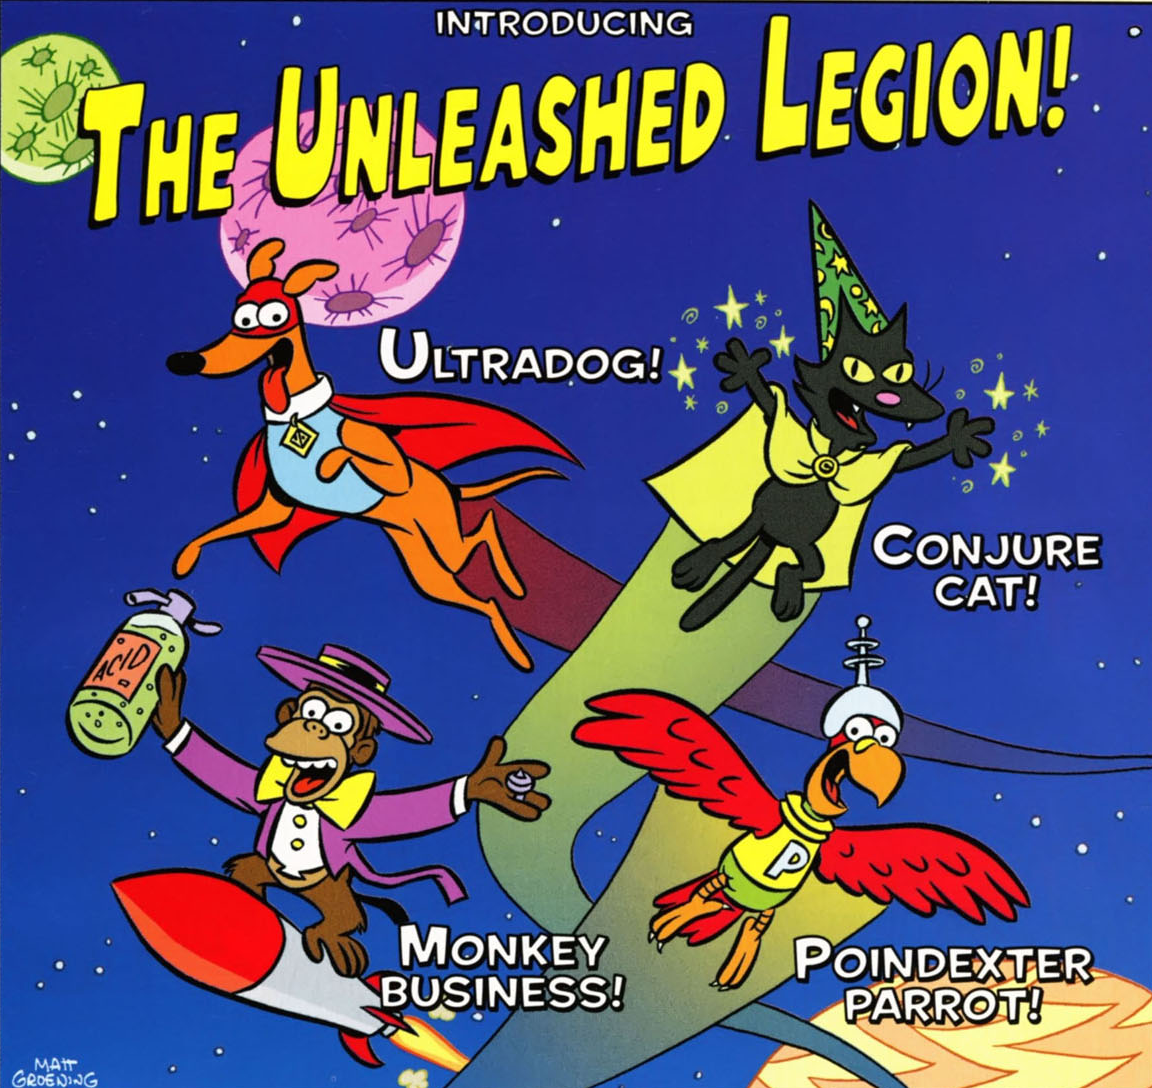 Introducing The Unleashed Legion!.png